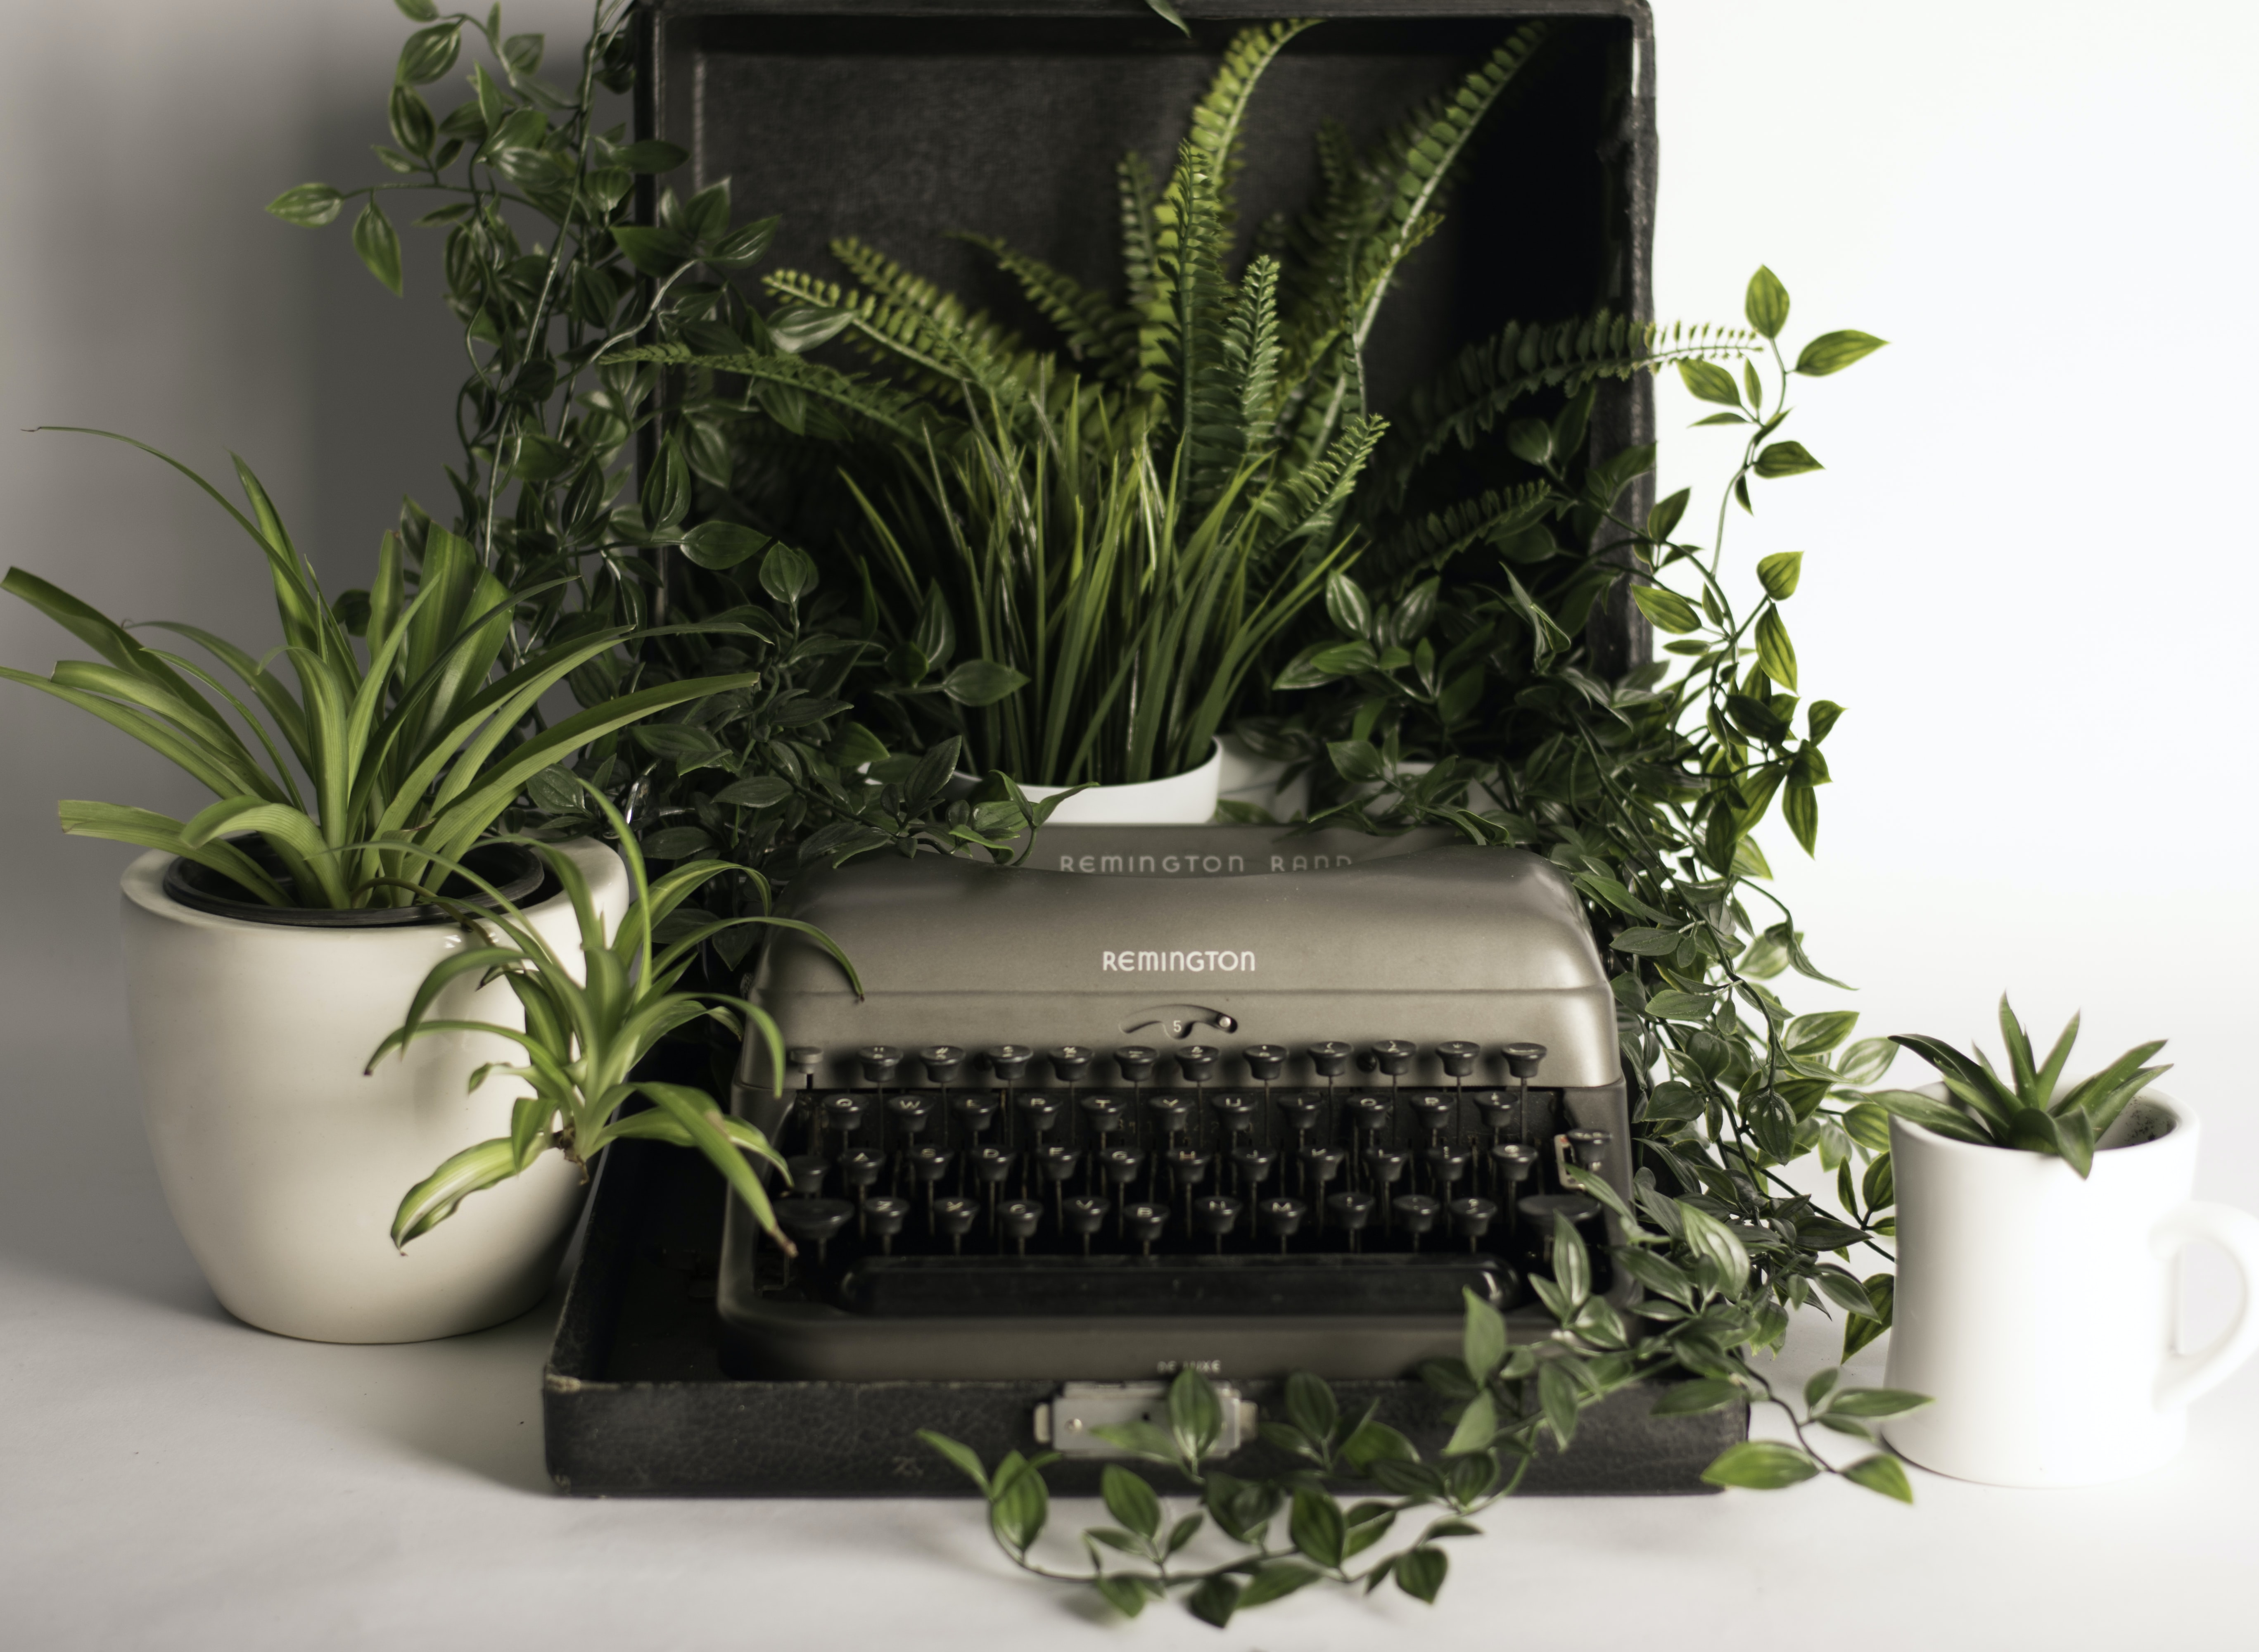 gray and black typewriter pot with green leaf plants